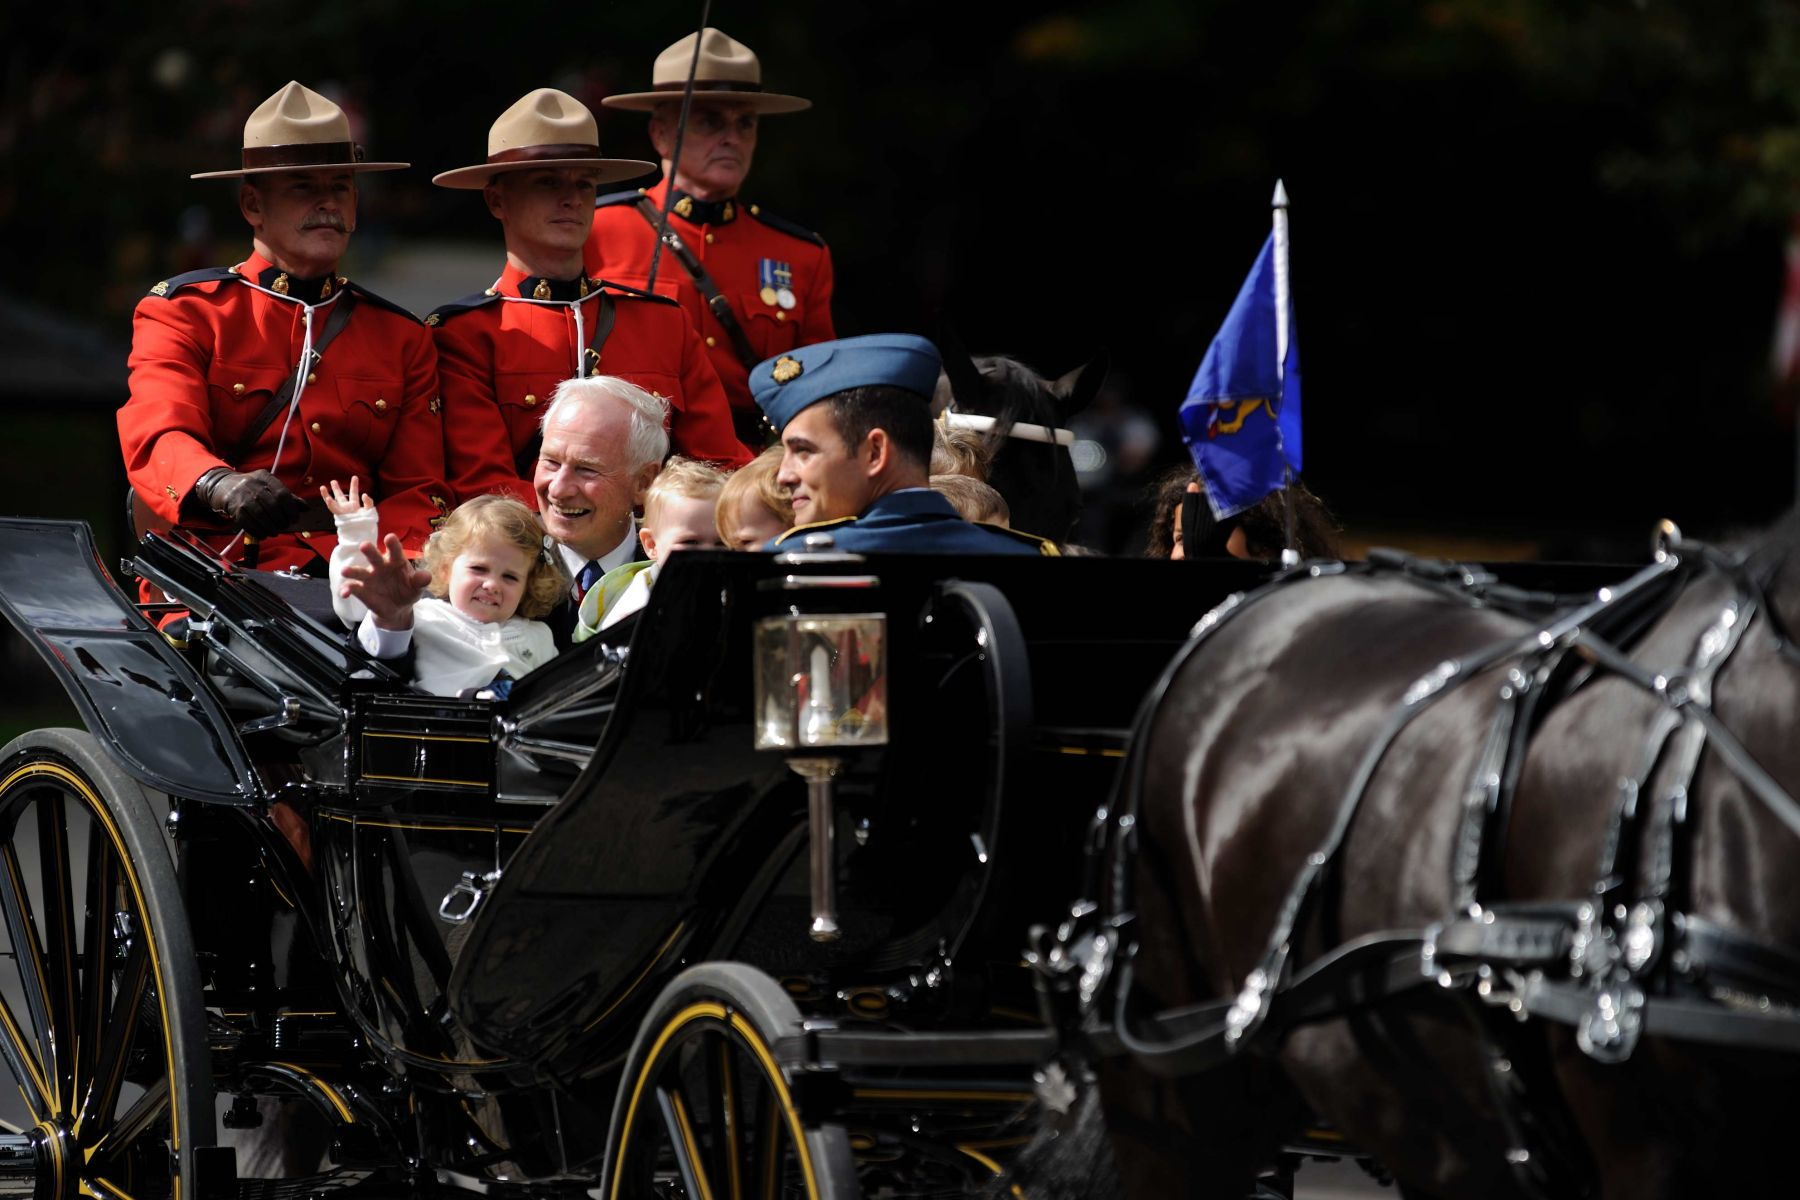 Their Excellencies then made their way to Rideau Hall. They arrived with their grandchildren.